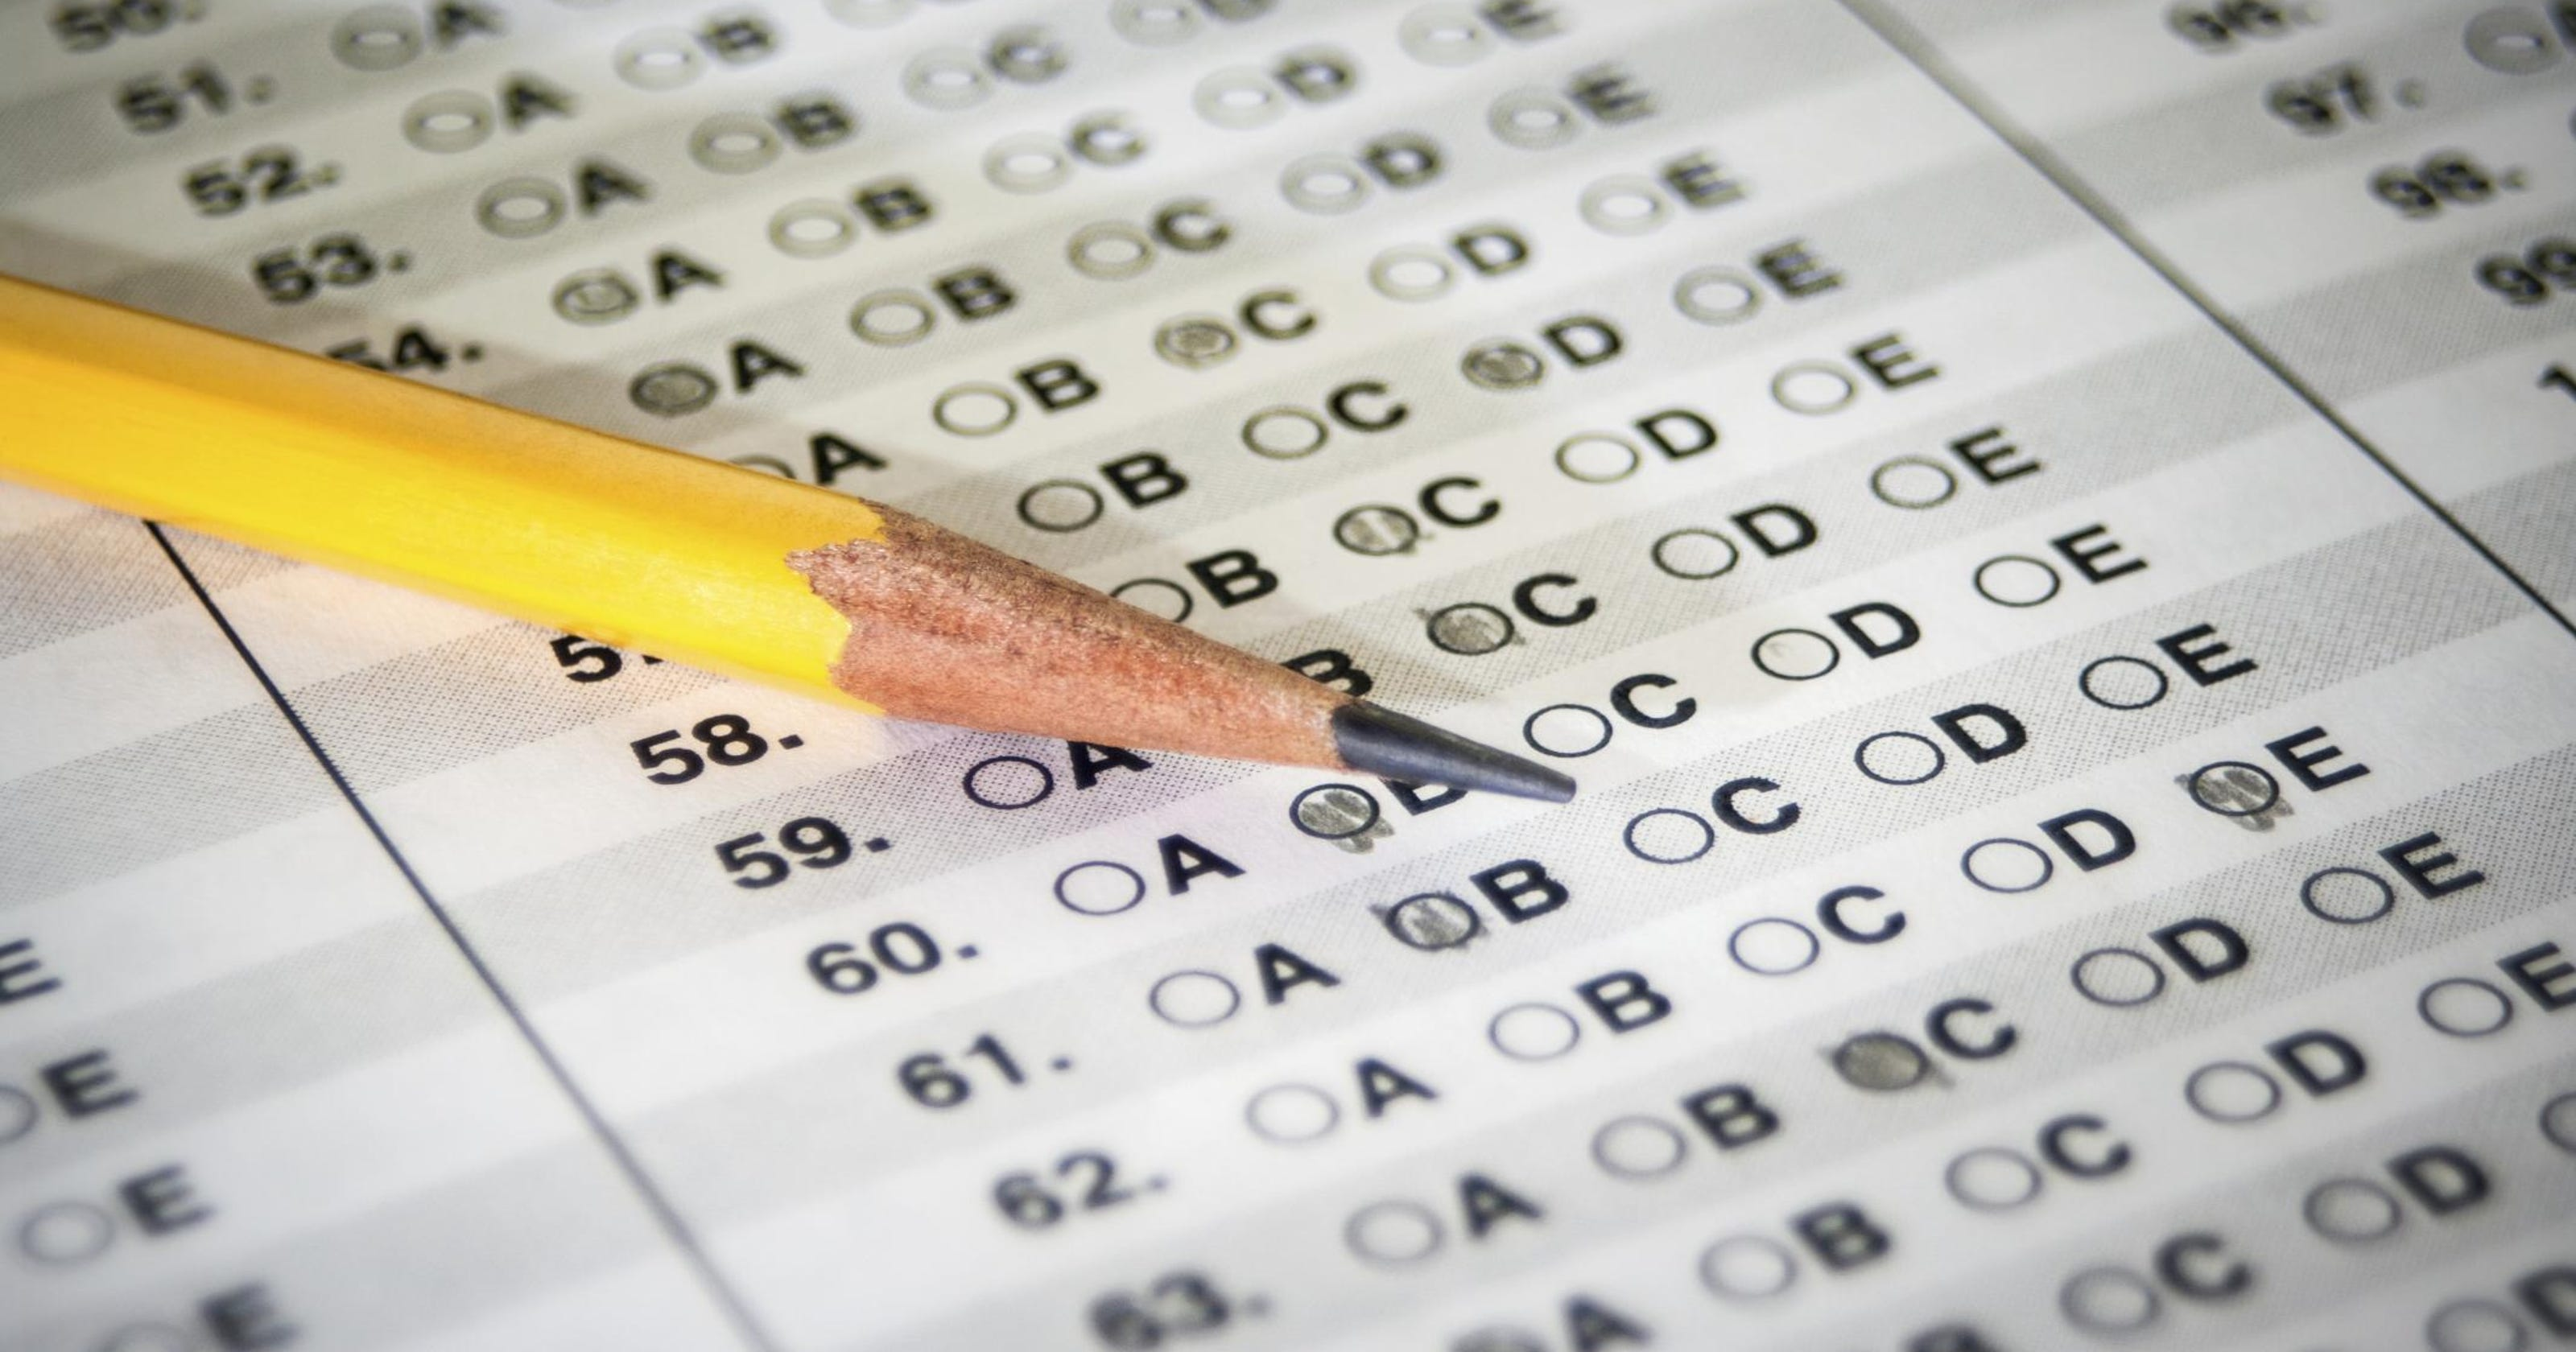 College Board says printing error won't affect SAT scores